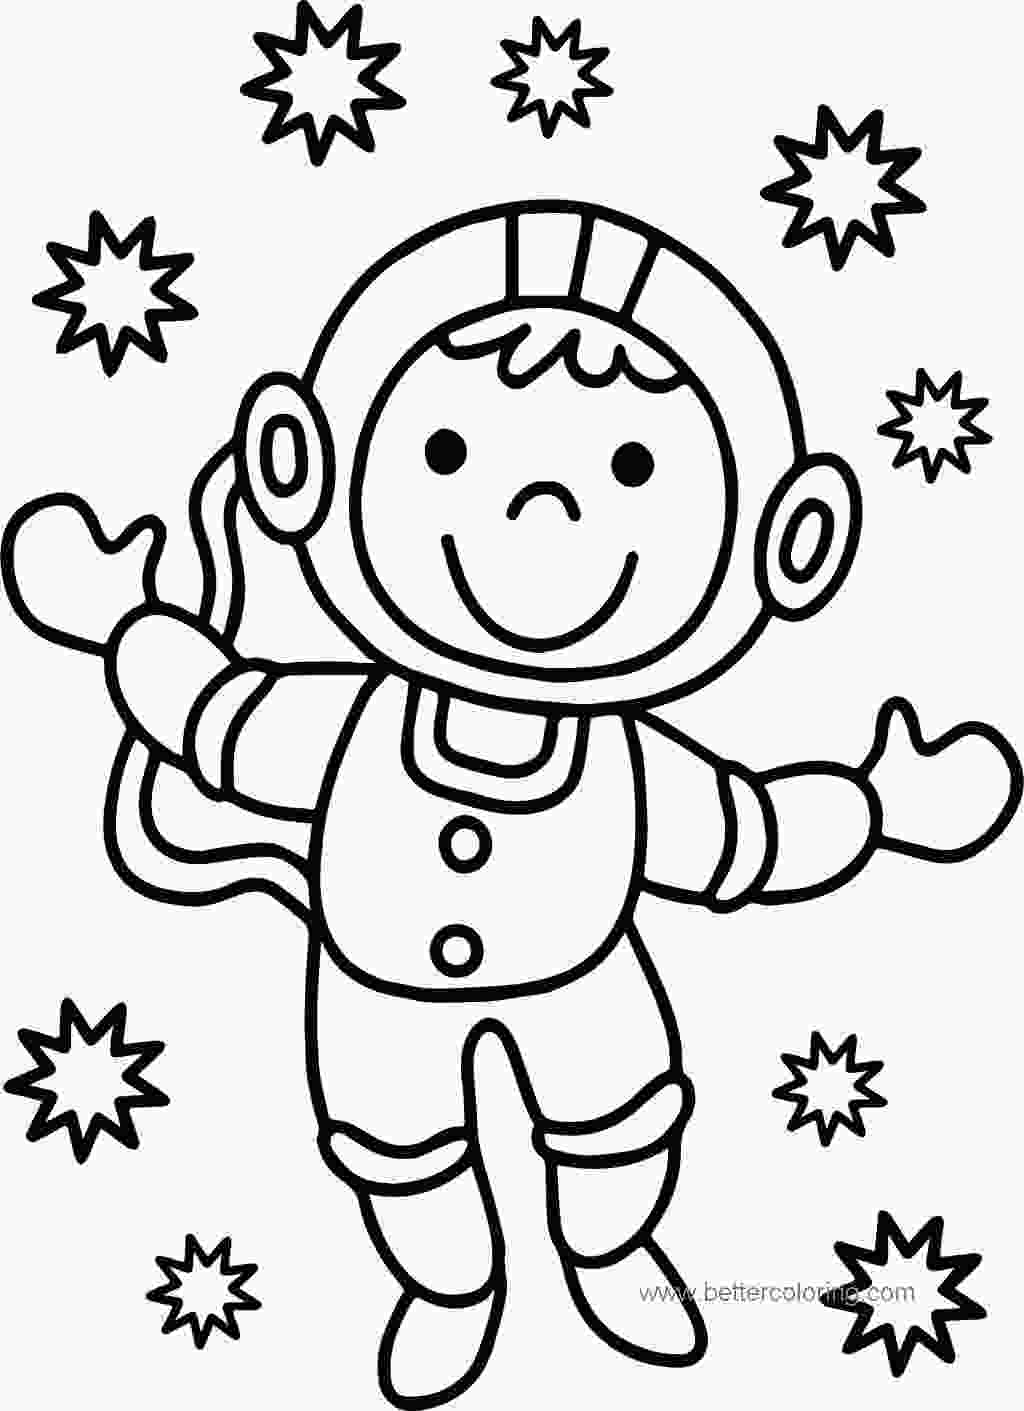 free astronaut coloring pages printable astronaut coloring pages lineart 258 free